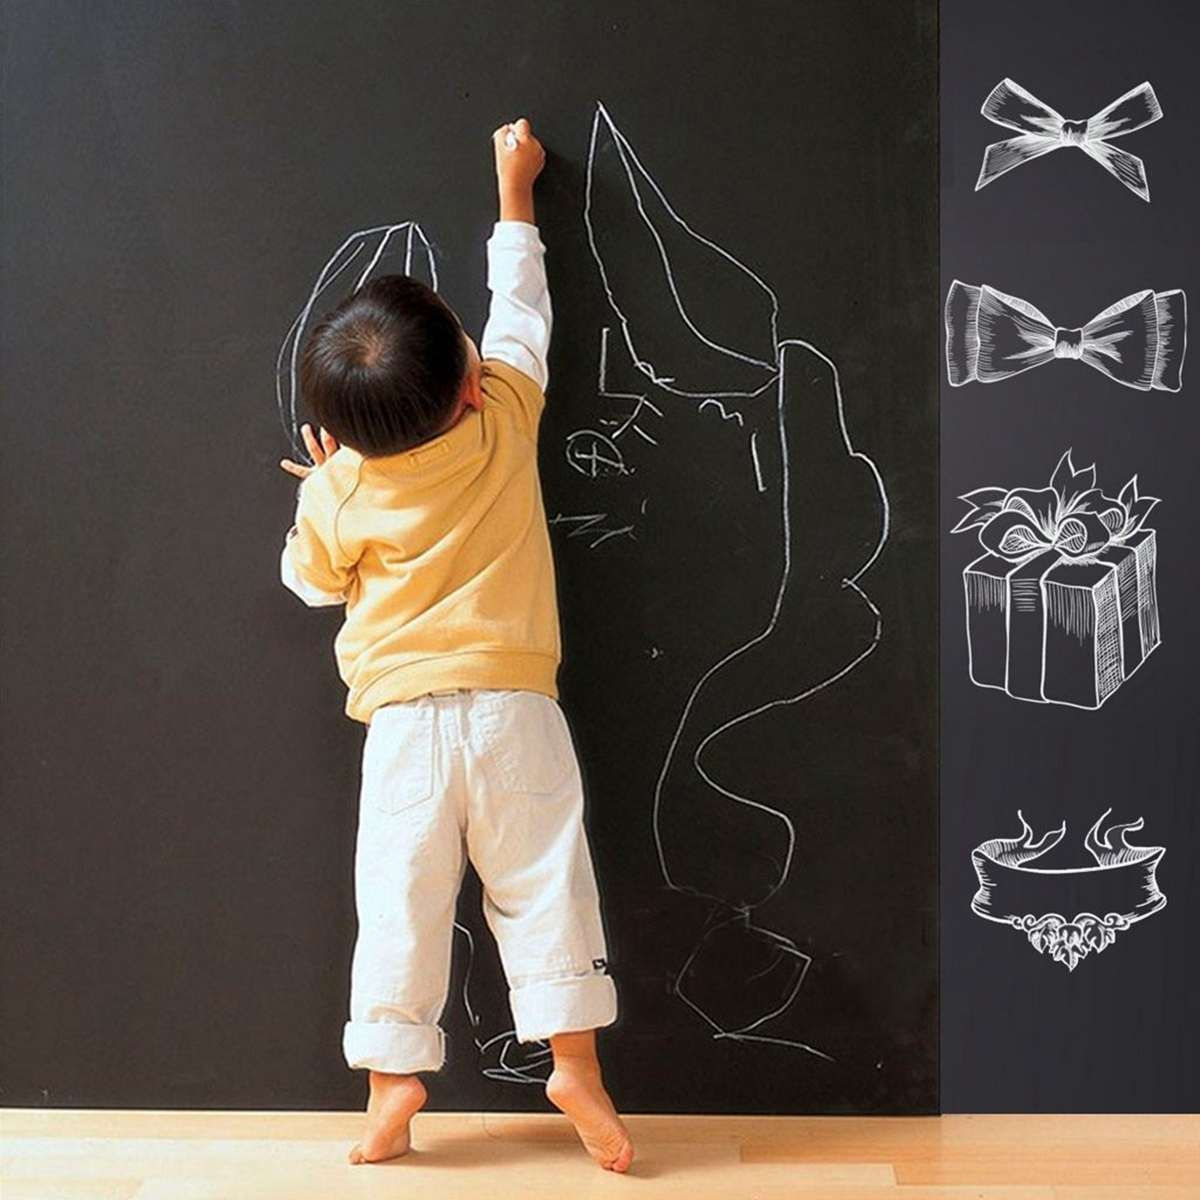 45/60x200cm Kids Blackboard Removable Wall Sticker Chalkboard Decal Children Blackboard Chalkboard Sticker Label For Boy Girls